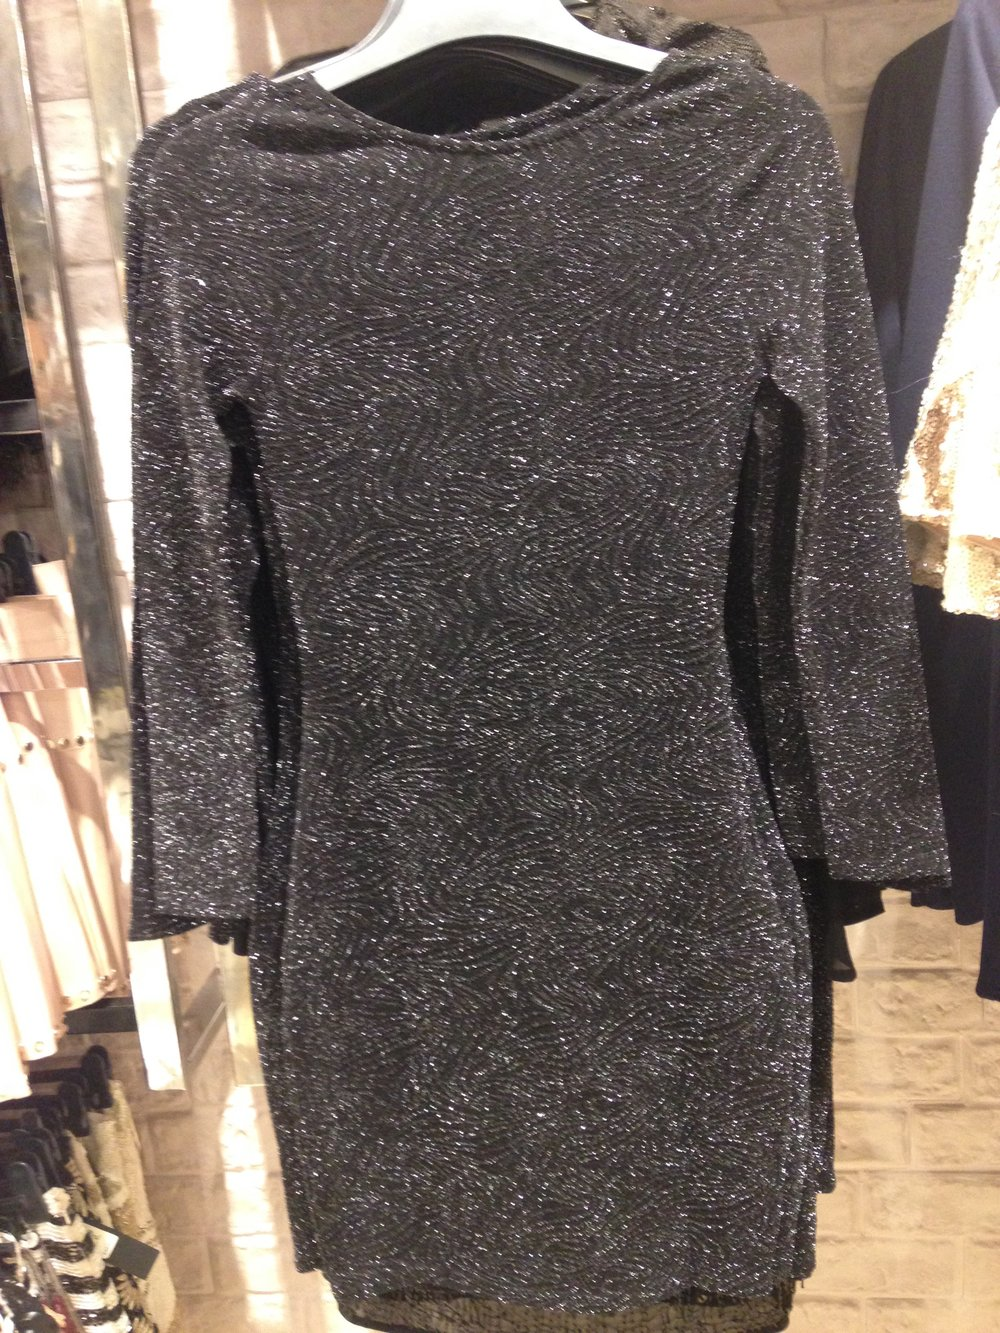 River Island! Body con dress. Perfect for a modern goth! €55